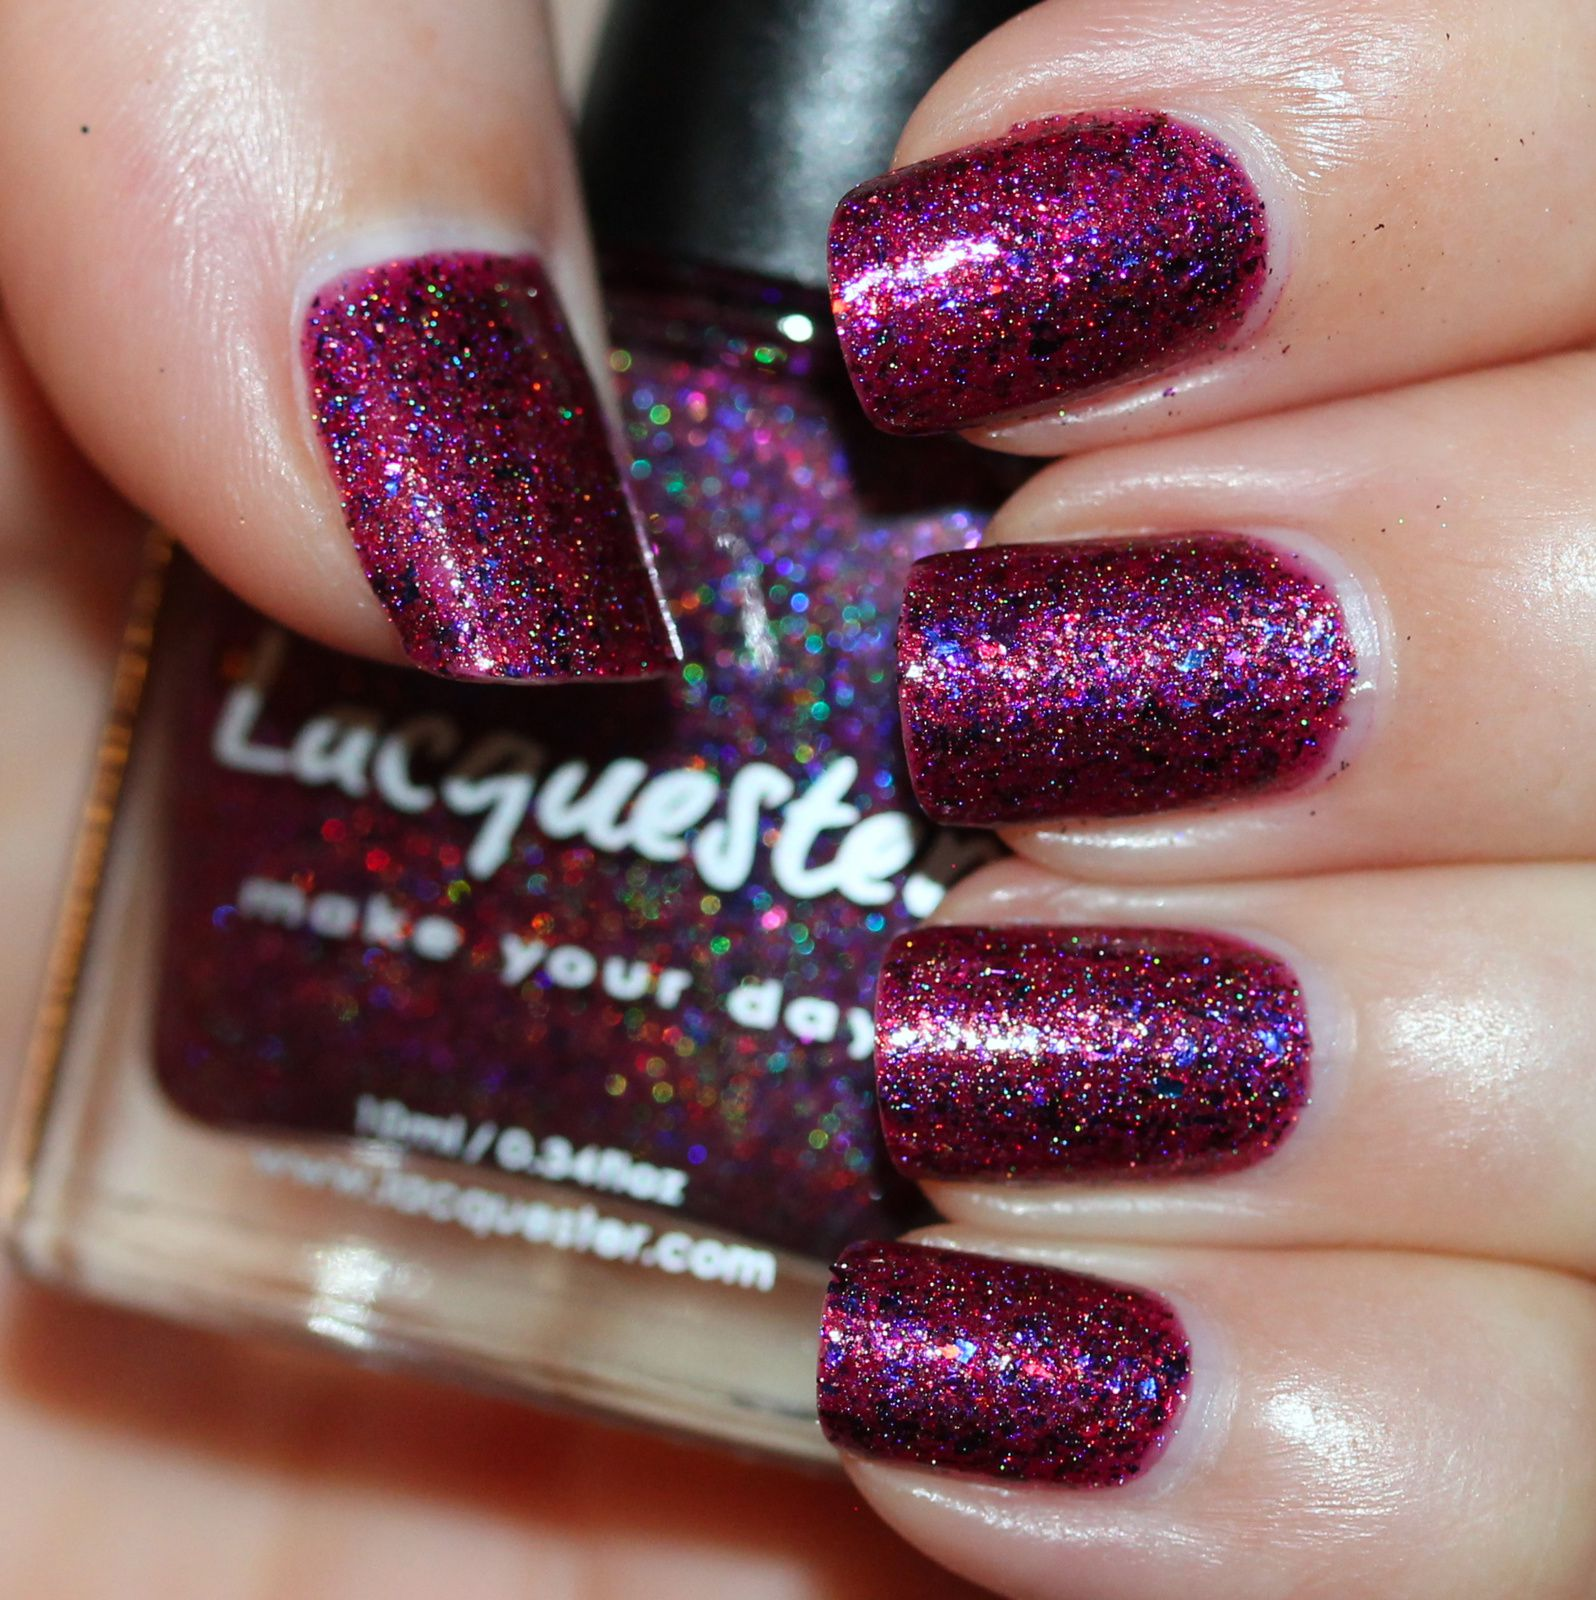 Lacquester Currant-ly Available (3 coats, no top coat)